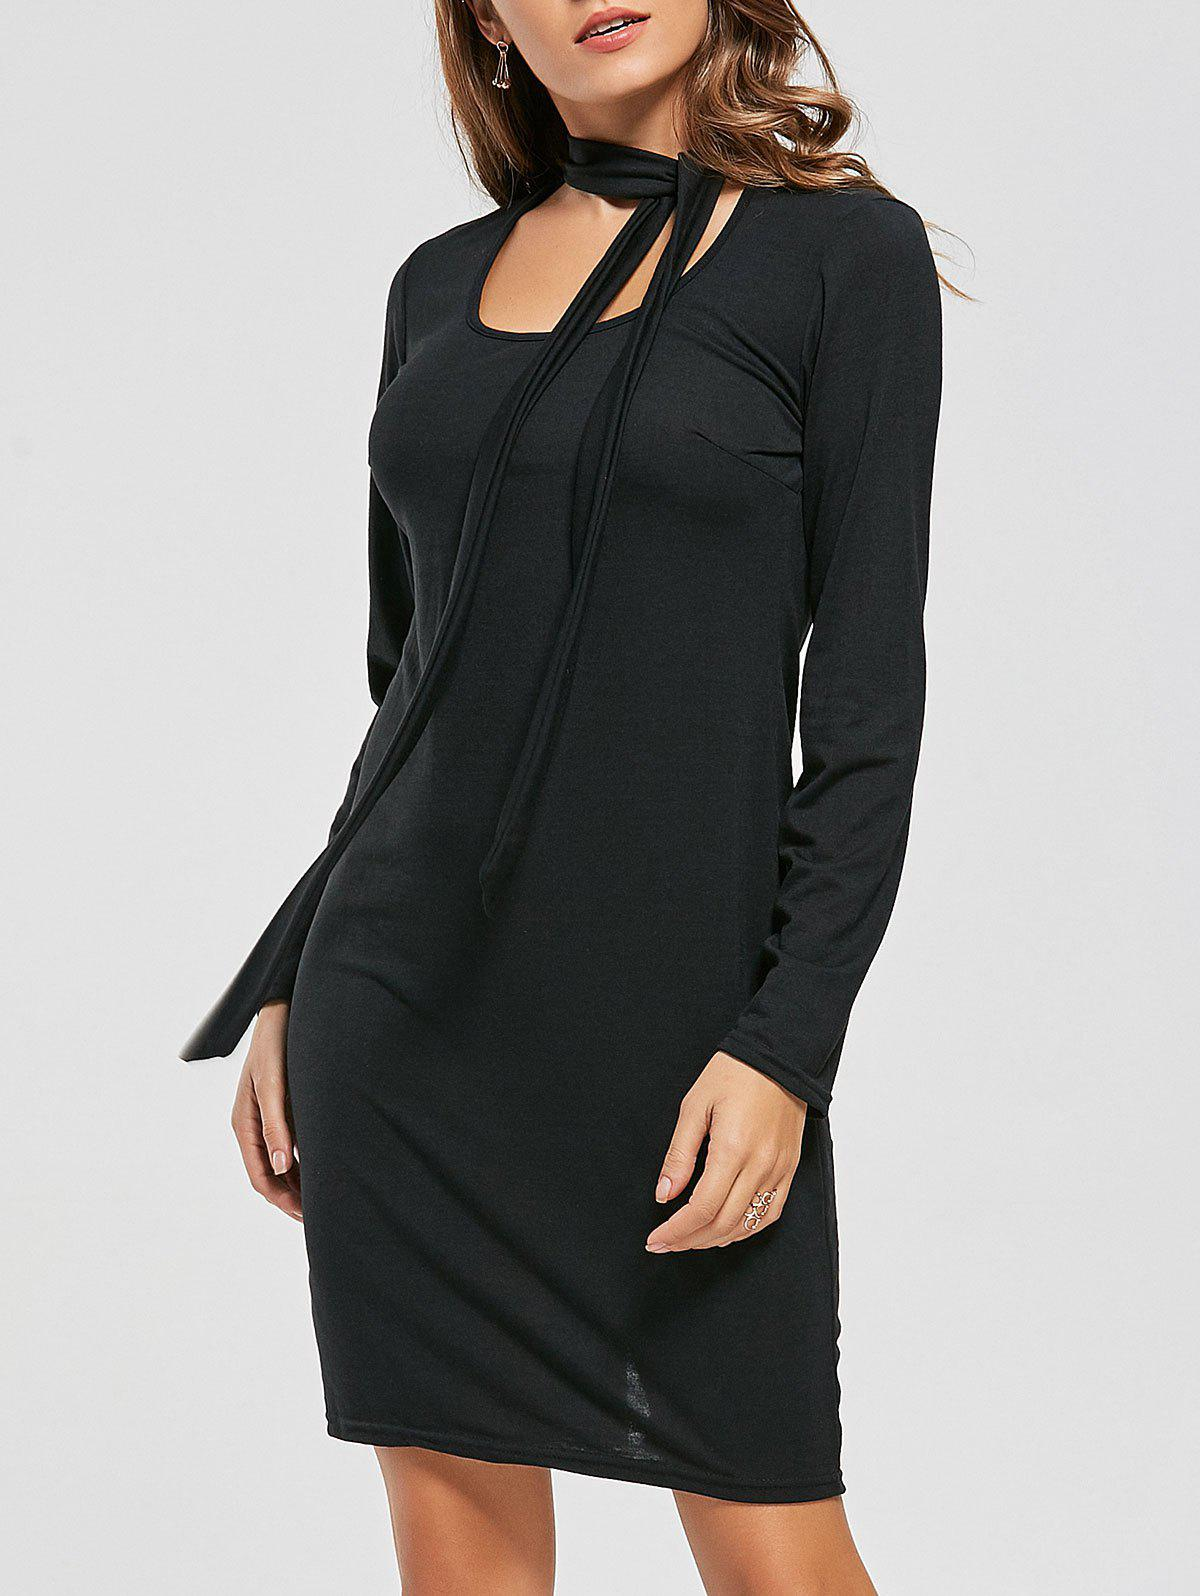 Long Sleeve Fitted Tied Dress - BLACK S